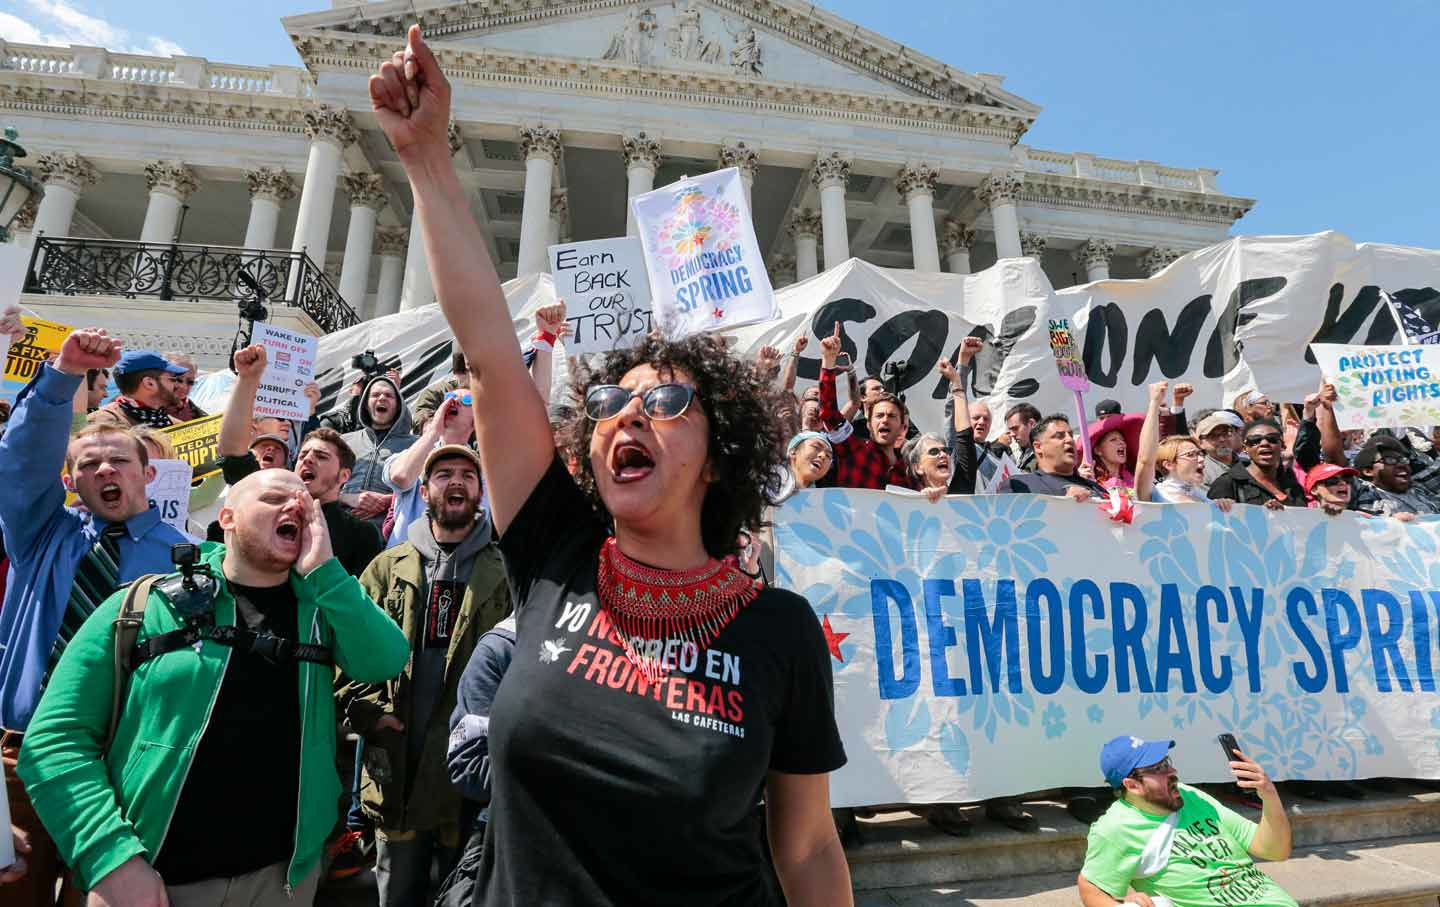 This Arizona woman leads a chant as voting-rights demonstrators stage a sit-in at the Capitol. She's not part of the problem. (AP Photo / J. Scott Applewhite)